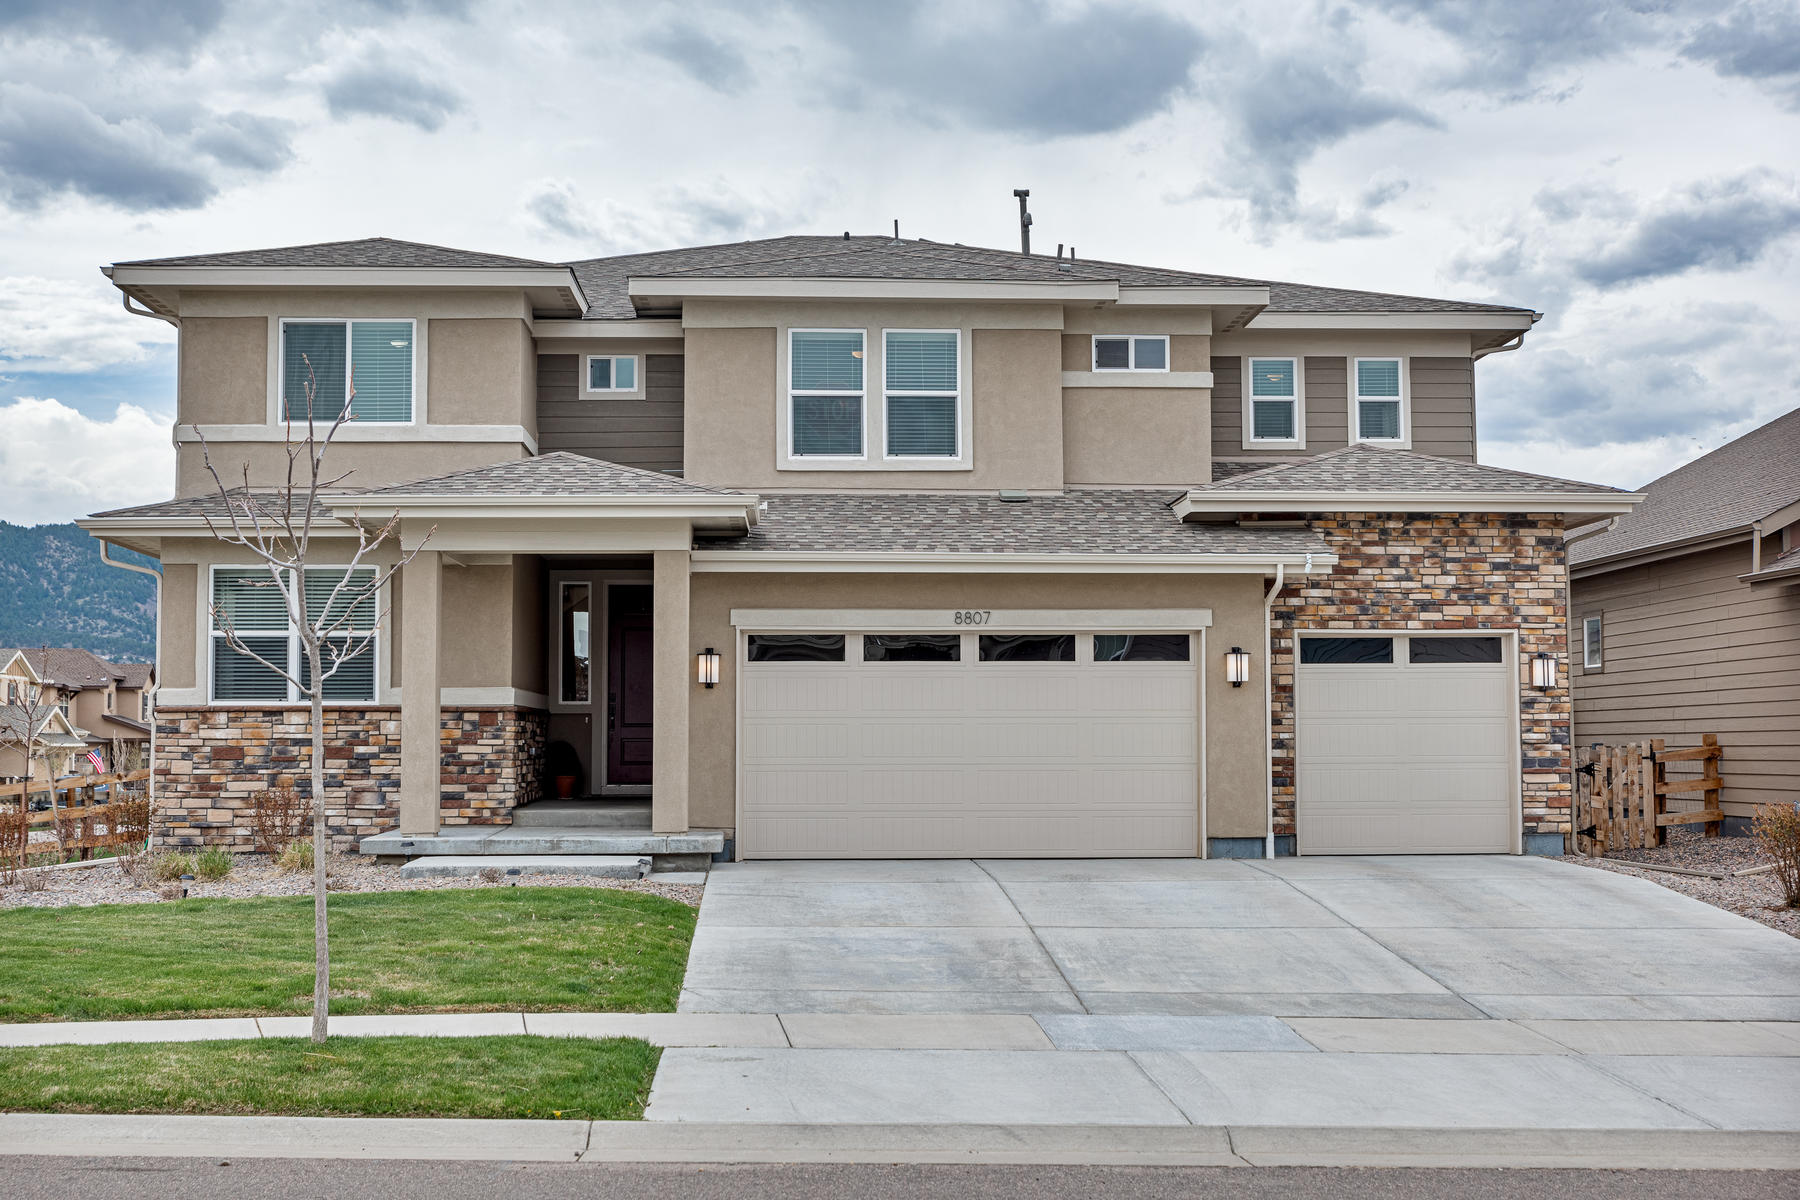 Single Family Homes for Sale at Move-In Ready & Better Than New! 8807 Eldora Street Arvada, Colorado 80007 United States